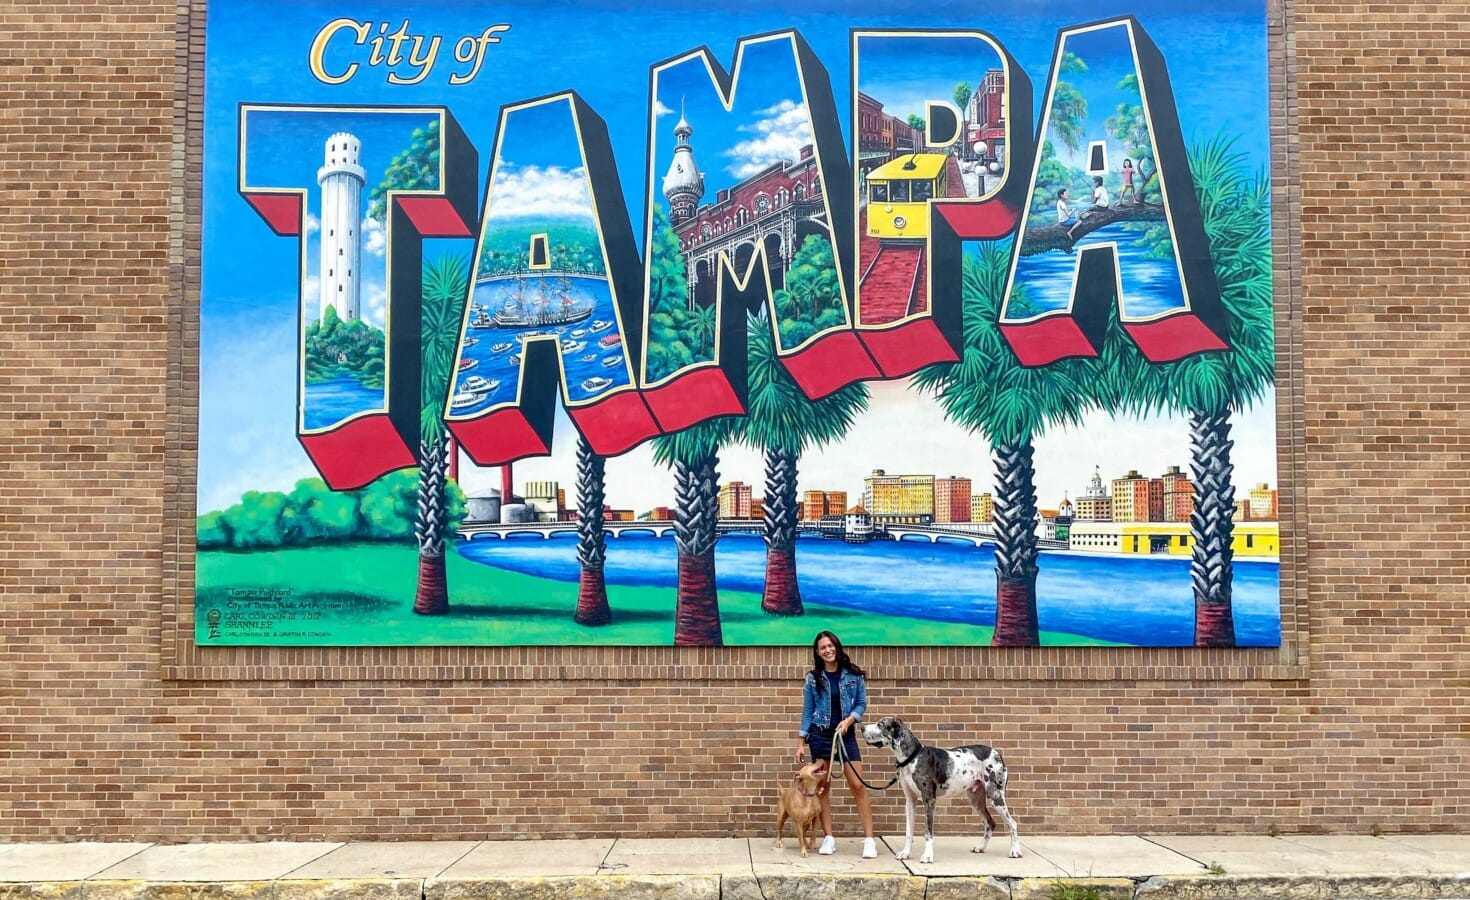 A woman and her two dogs stand in front of a City of Tampa mural